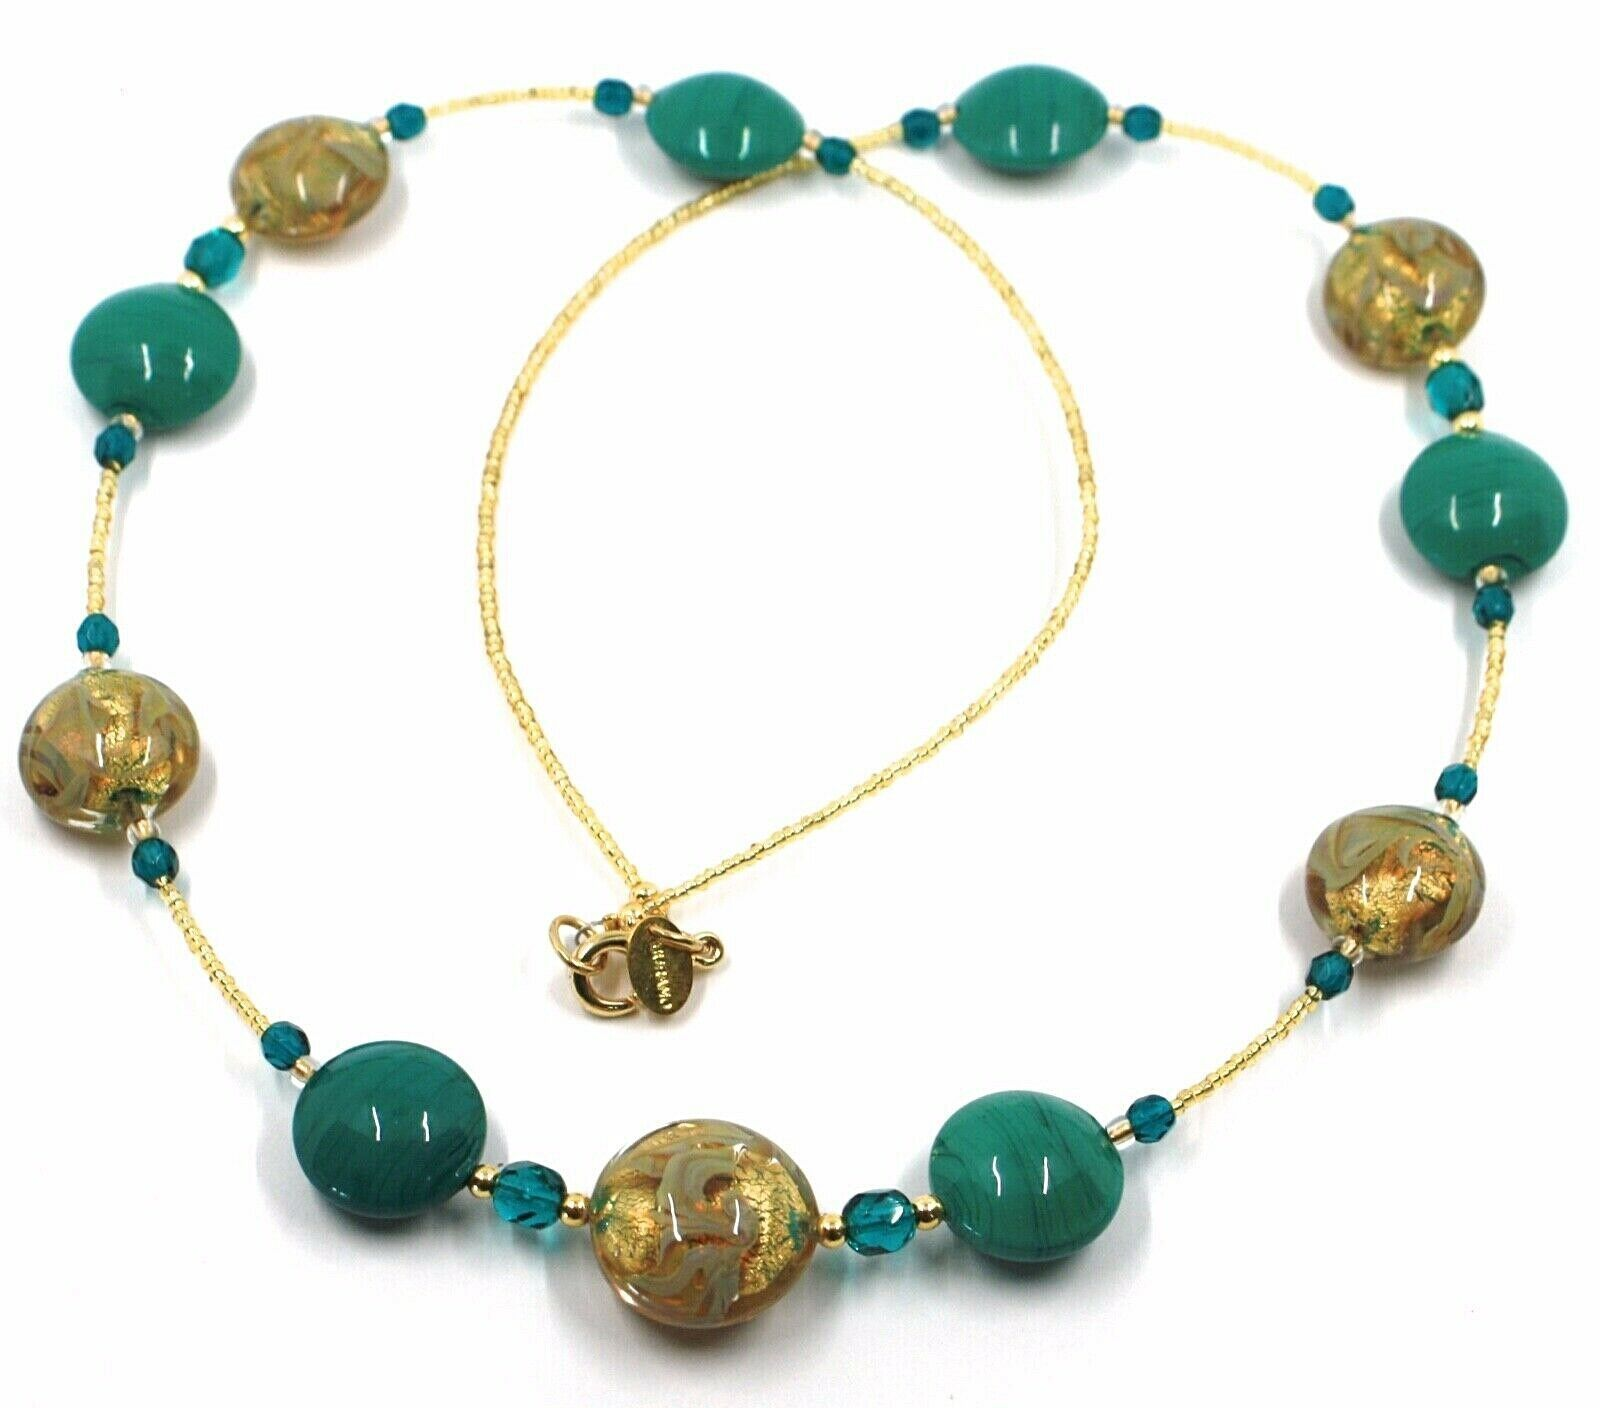 "LONG NECKLACE GREEN YELLOW MURANO GLASS DISC GOLD LEAF, 70cm, 27.5"" ITALY MADE"